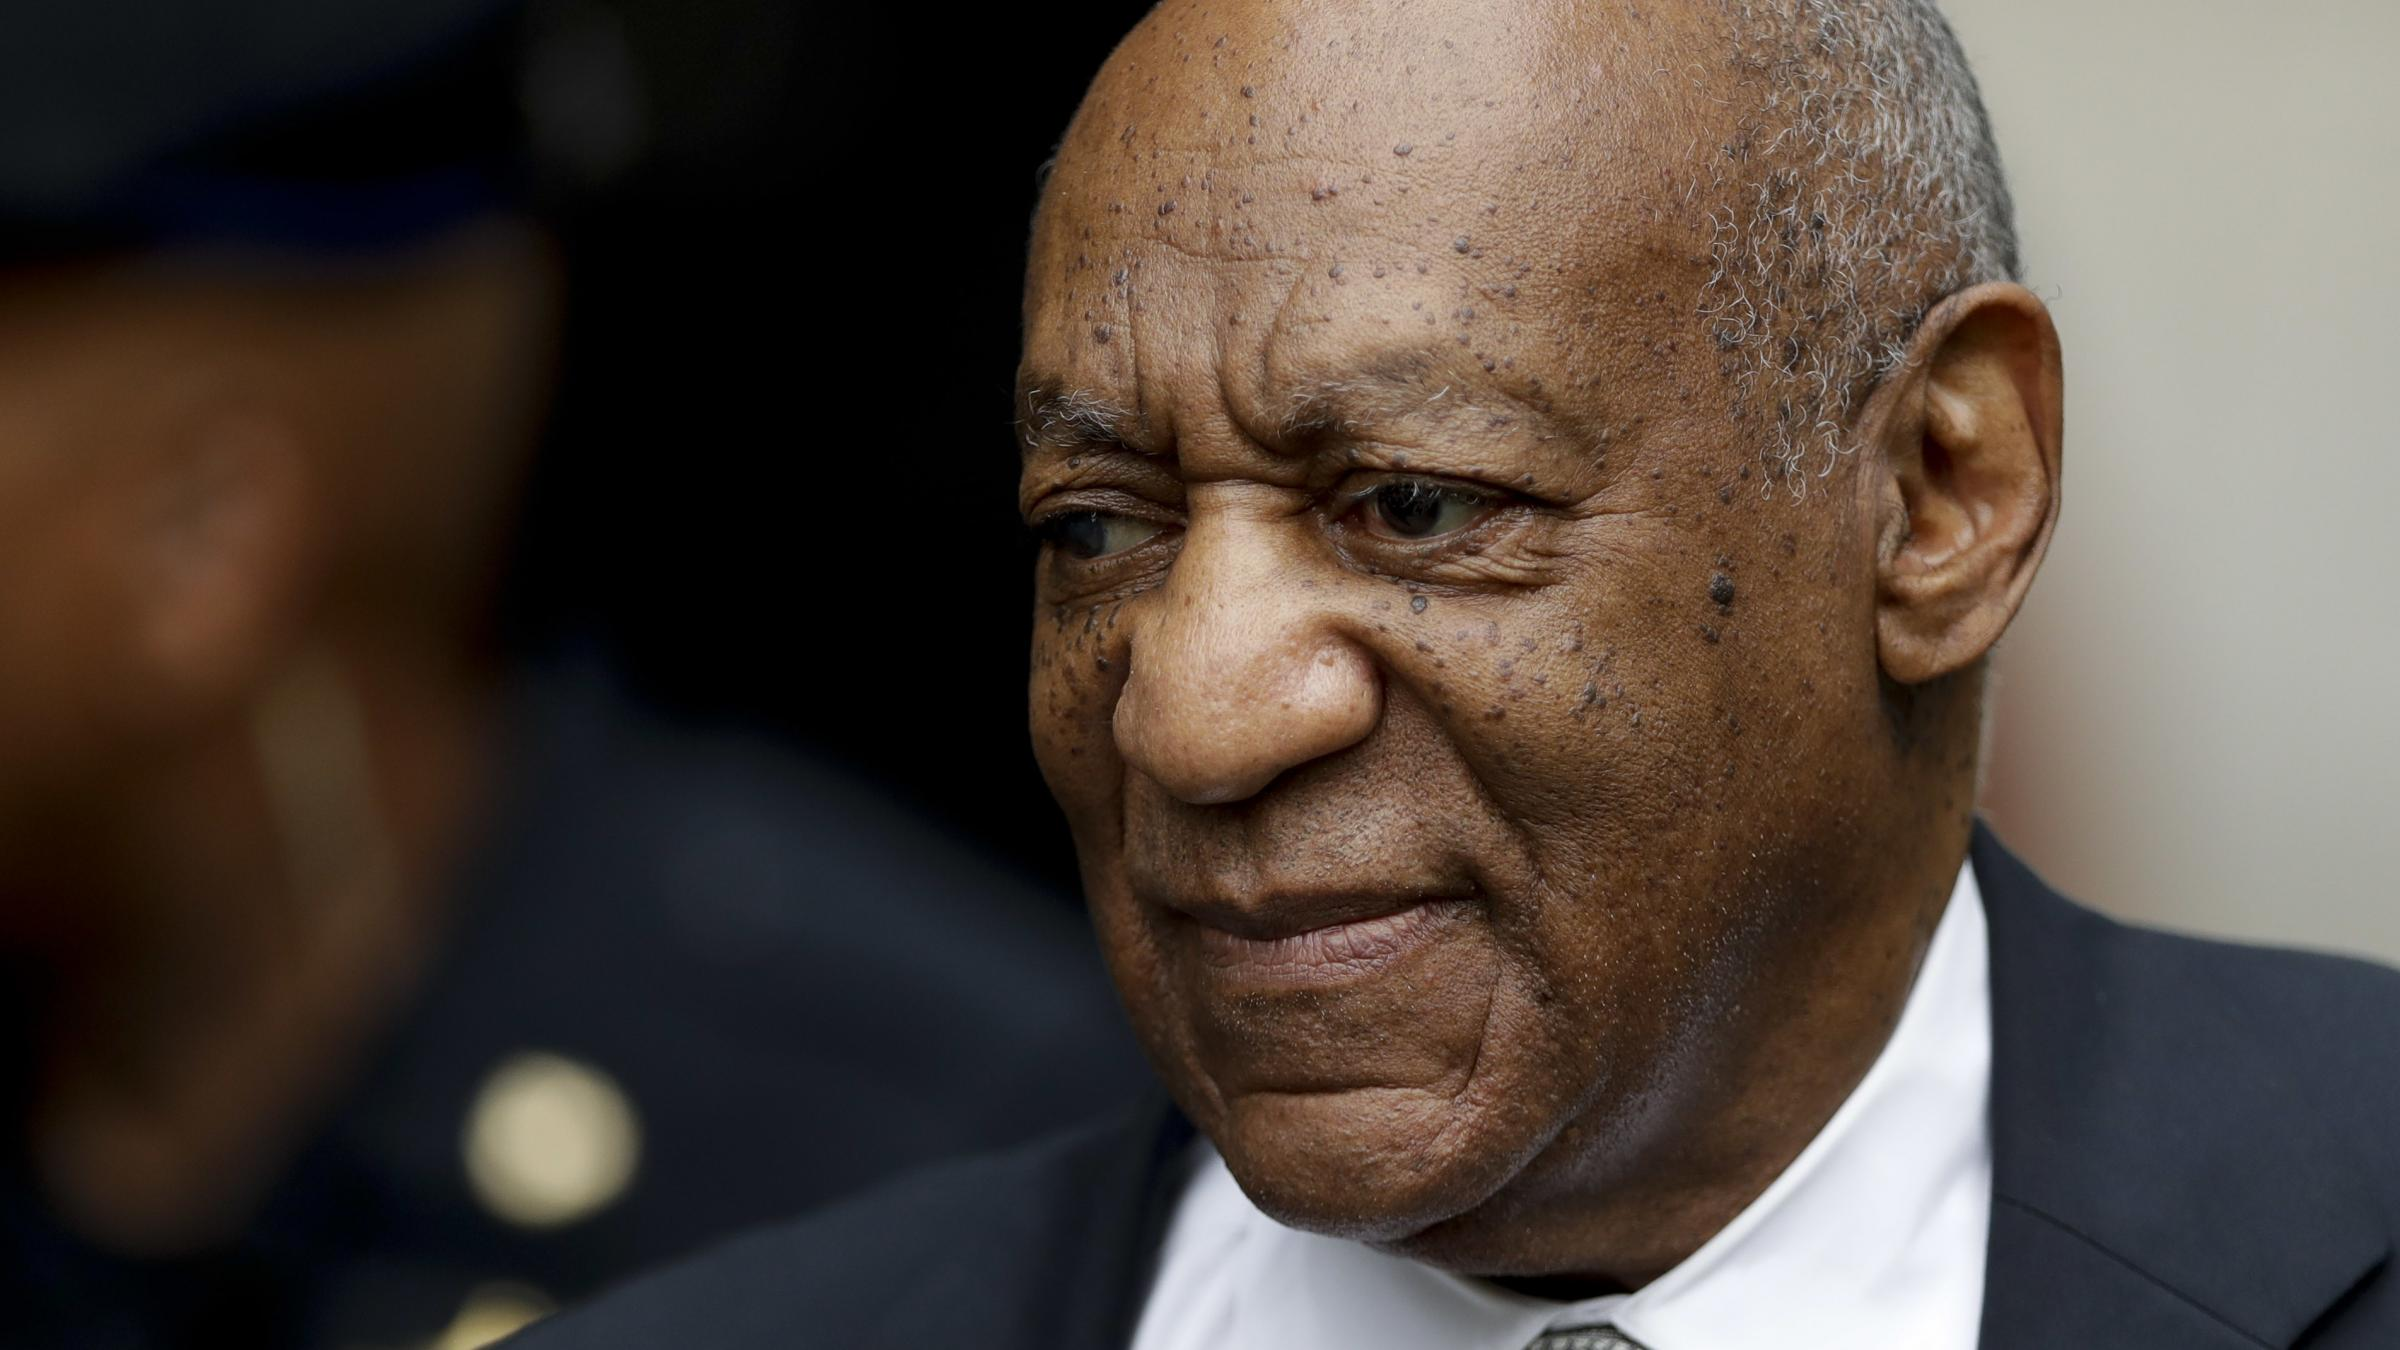 The Bill Cosby Sexual Assault Case Has Ended in a Mistrial